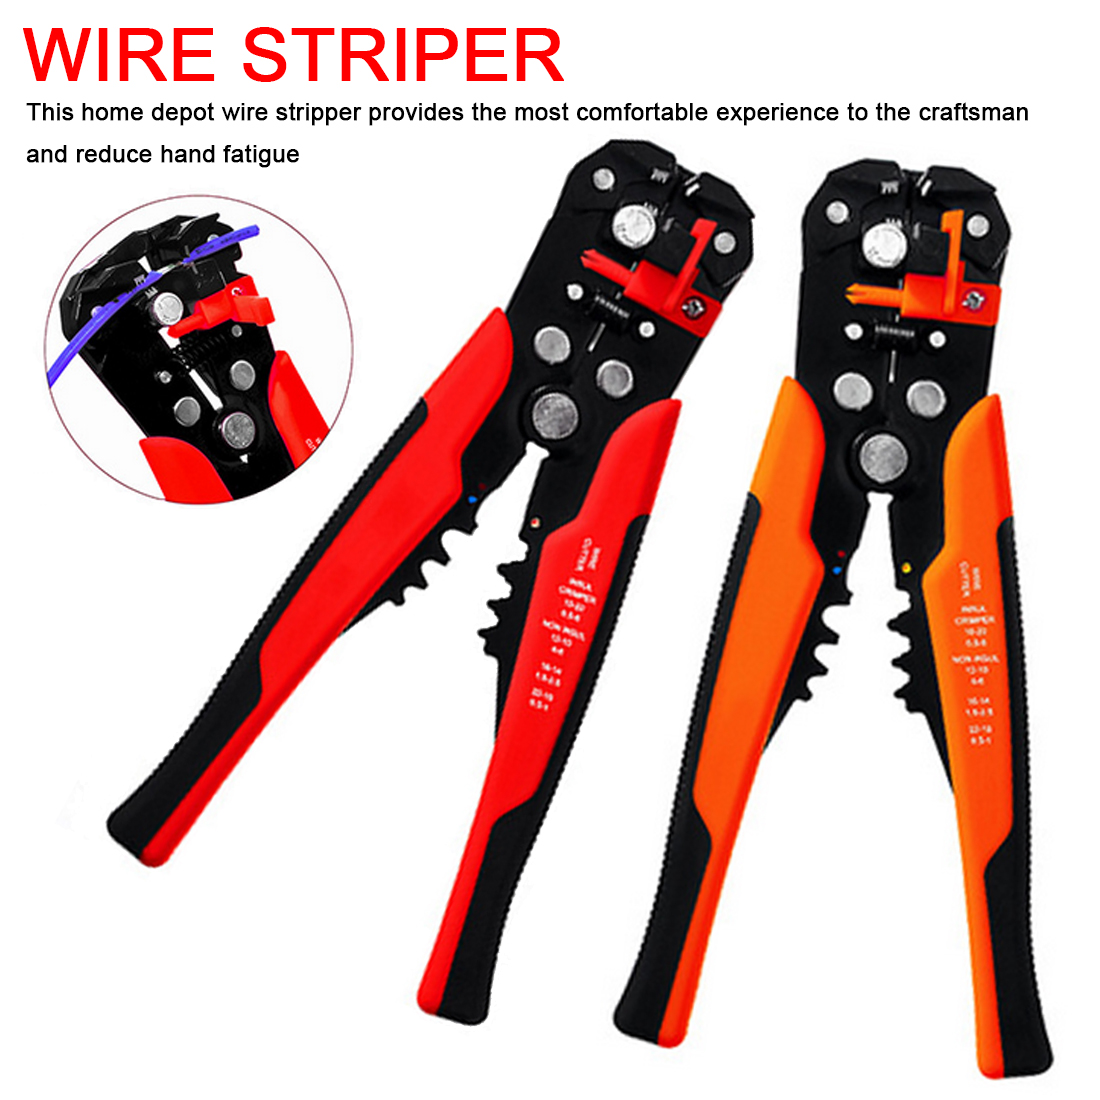 Crimper Cable Cutter Automatic Wire Stripper Multifunctional Stripping Tools Crimping Pliers Terminal 0.2-6.0mm2